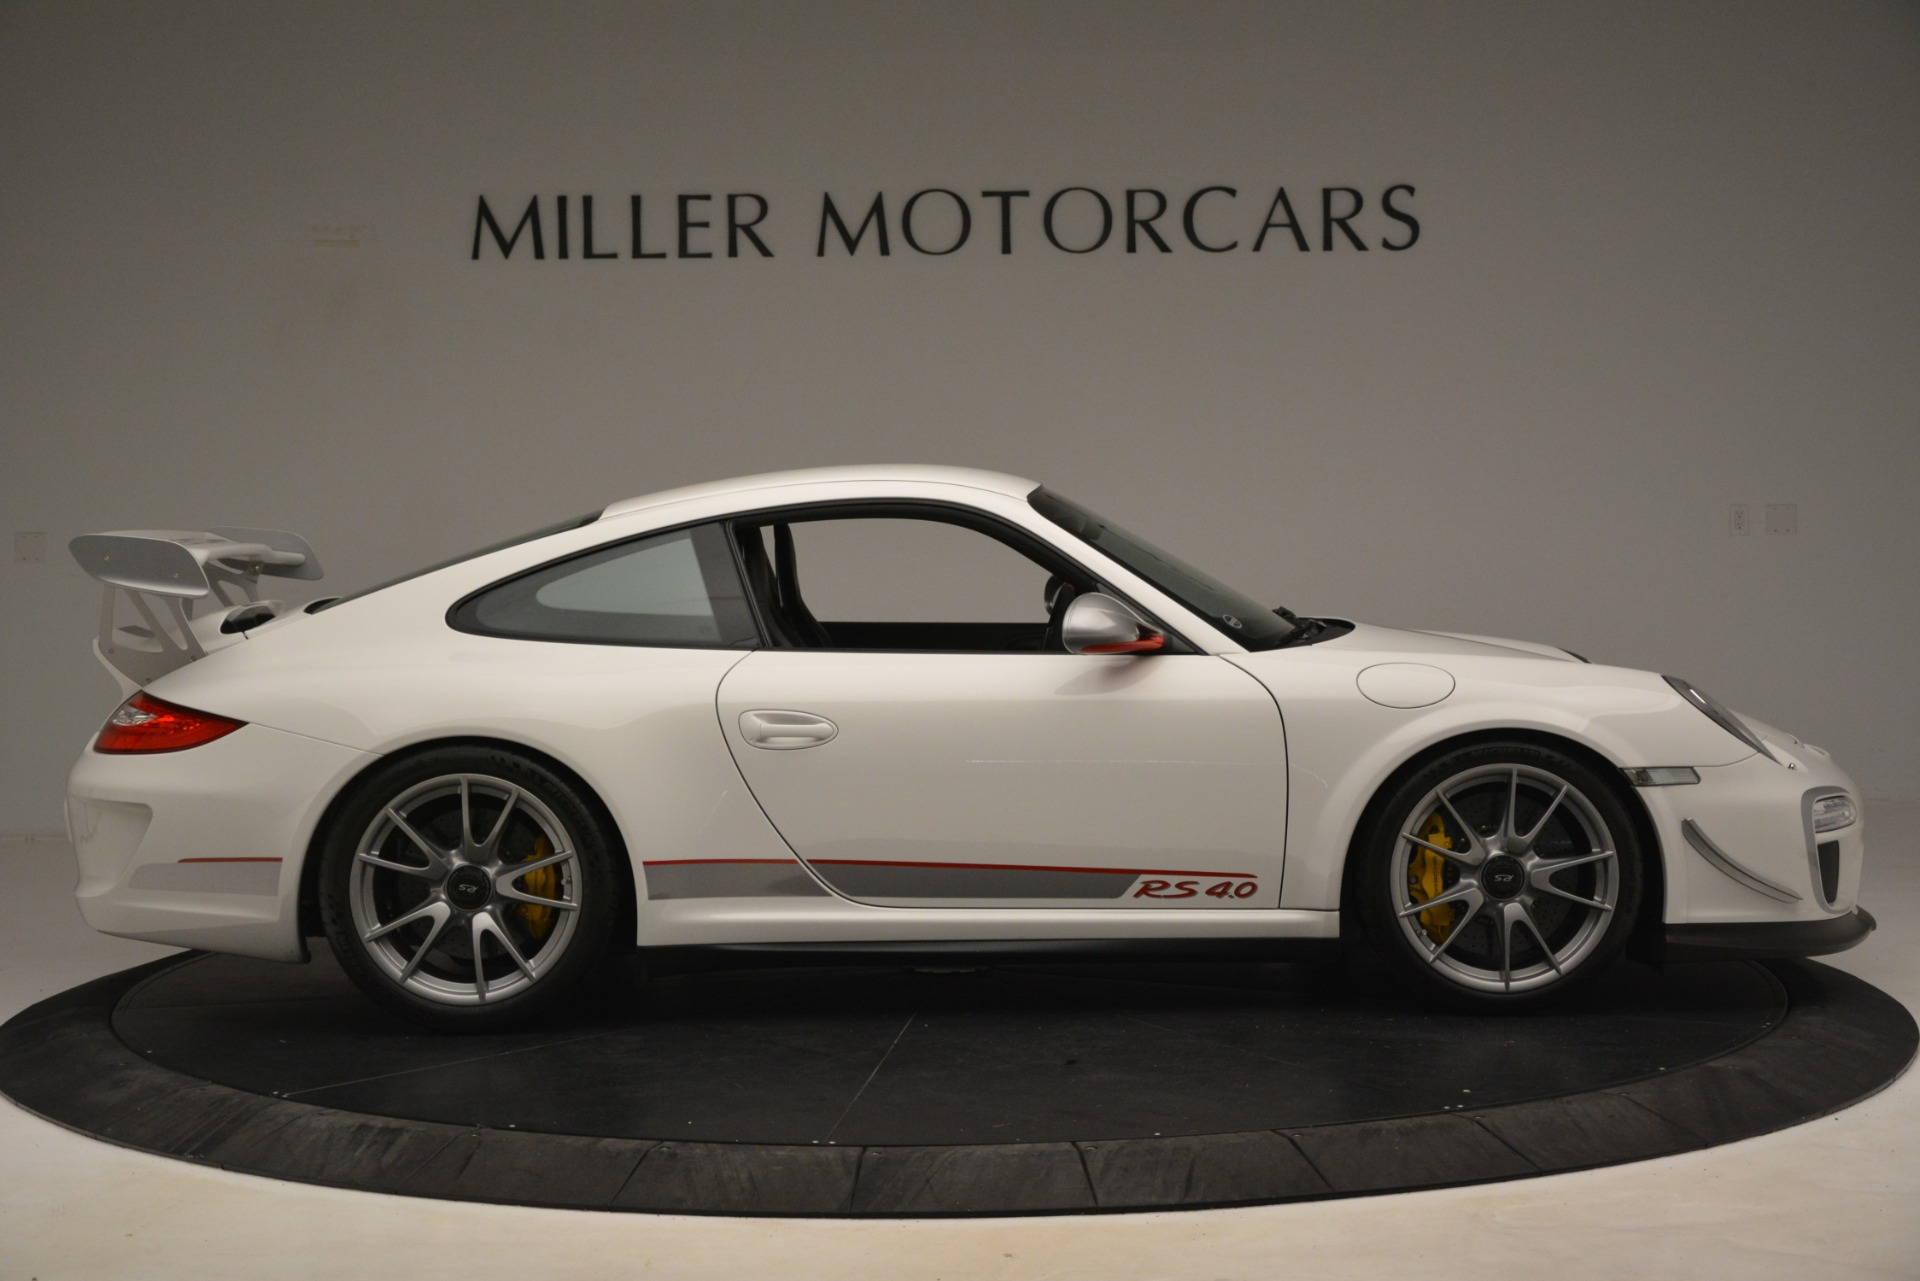 Used 2011 Porsche 911 GT3 RS 4.0 For Sale In Greenwich, CT 3188_p10